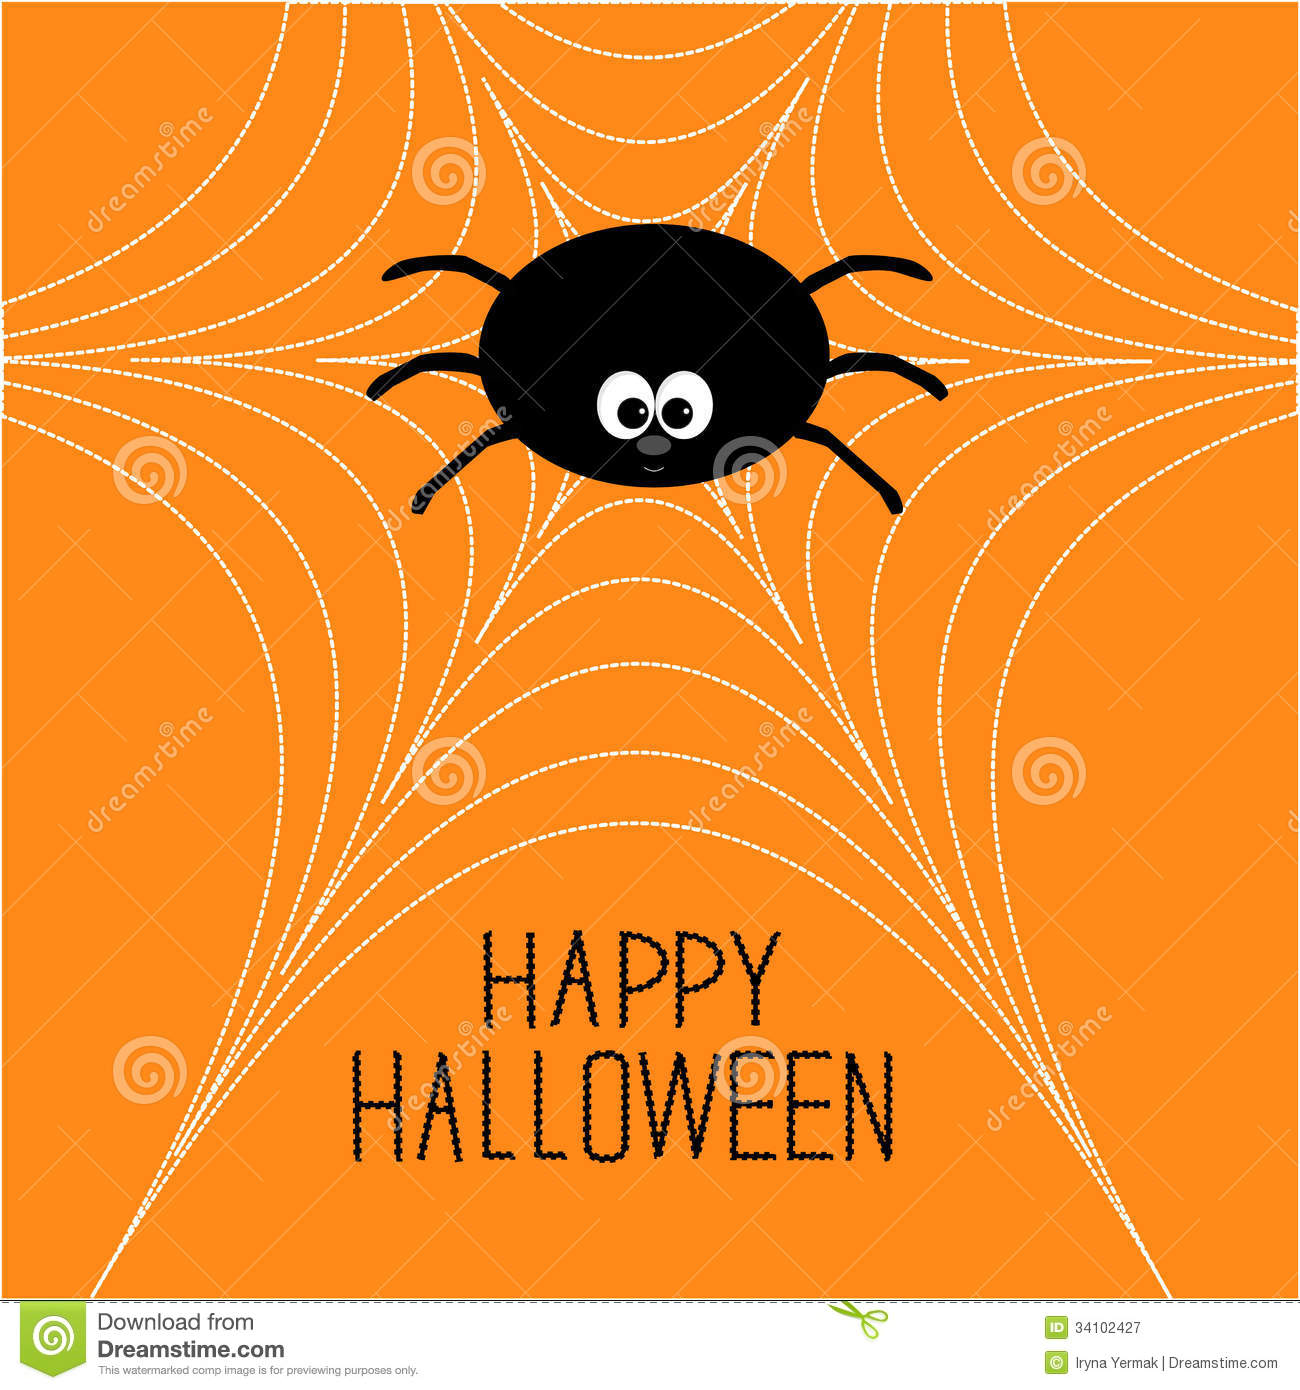 HD wallpapers cute halloween coloring pages